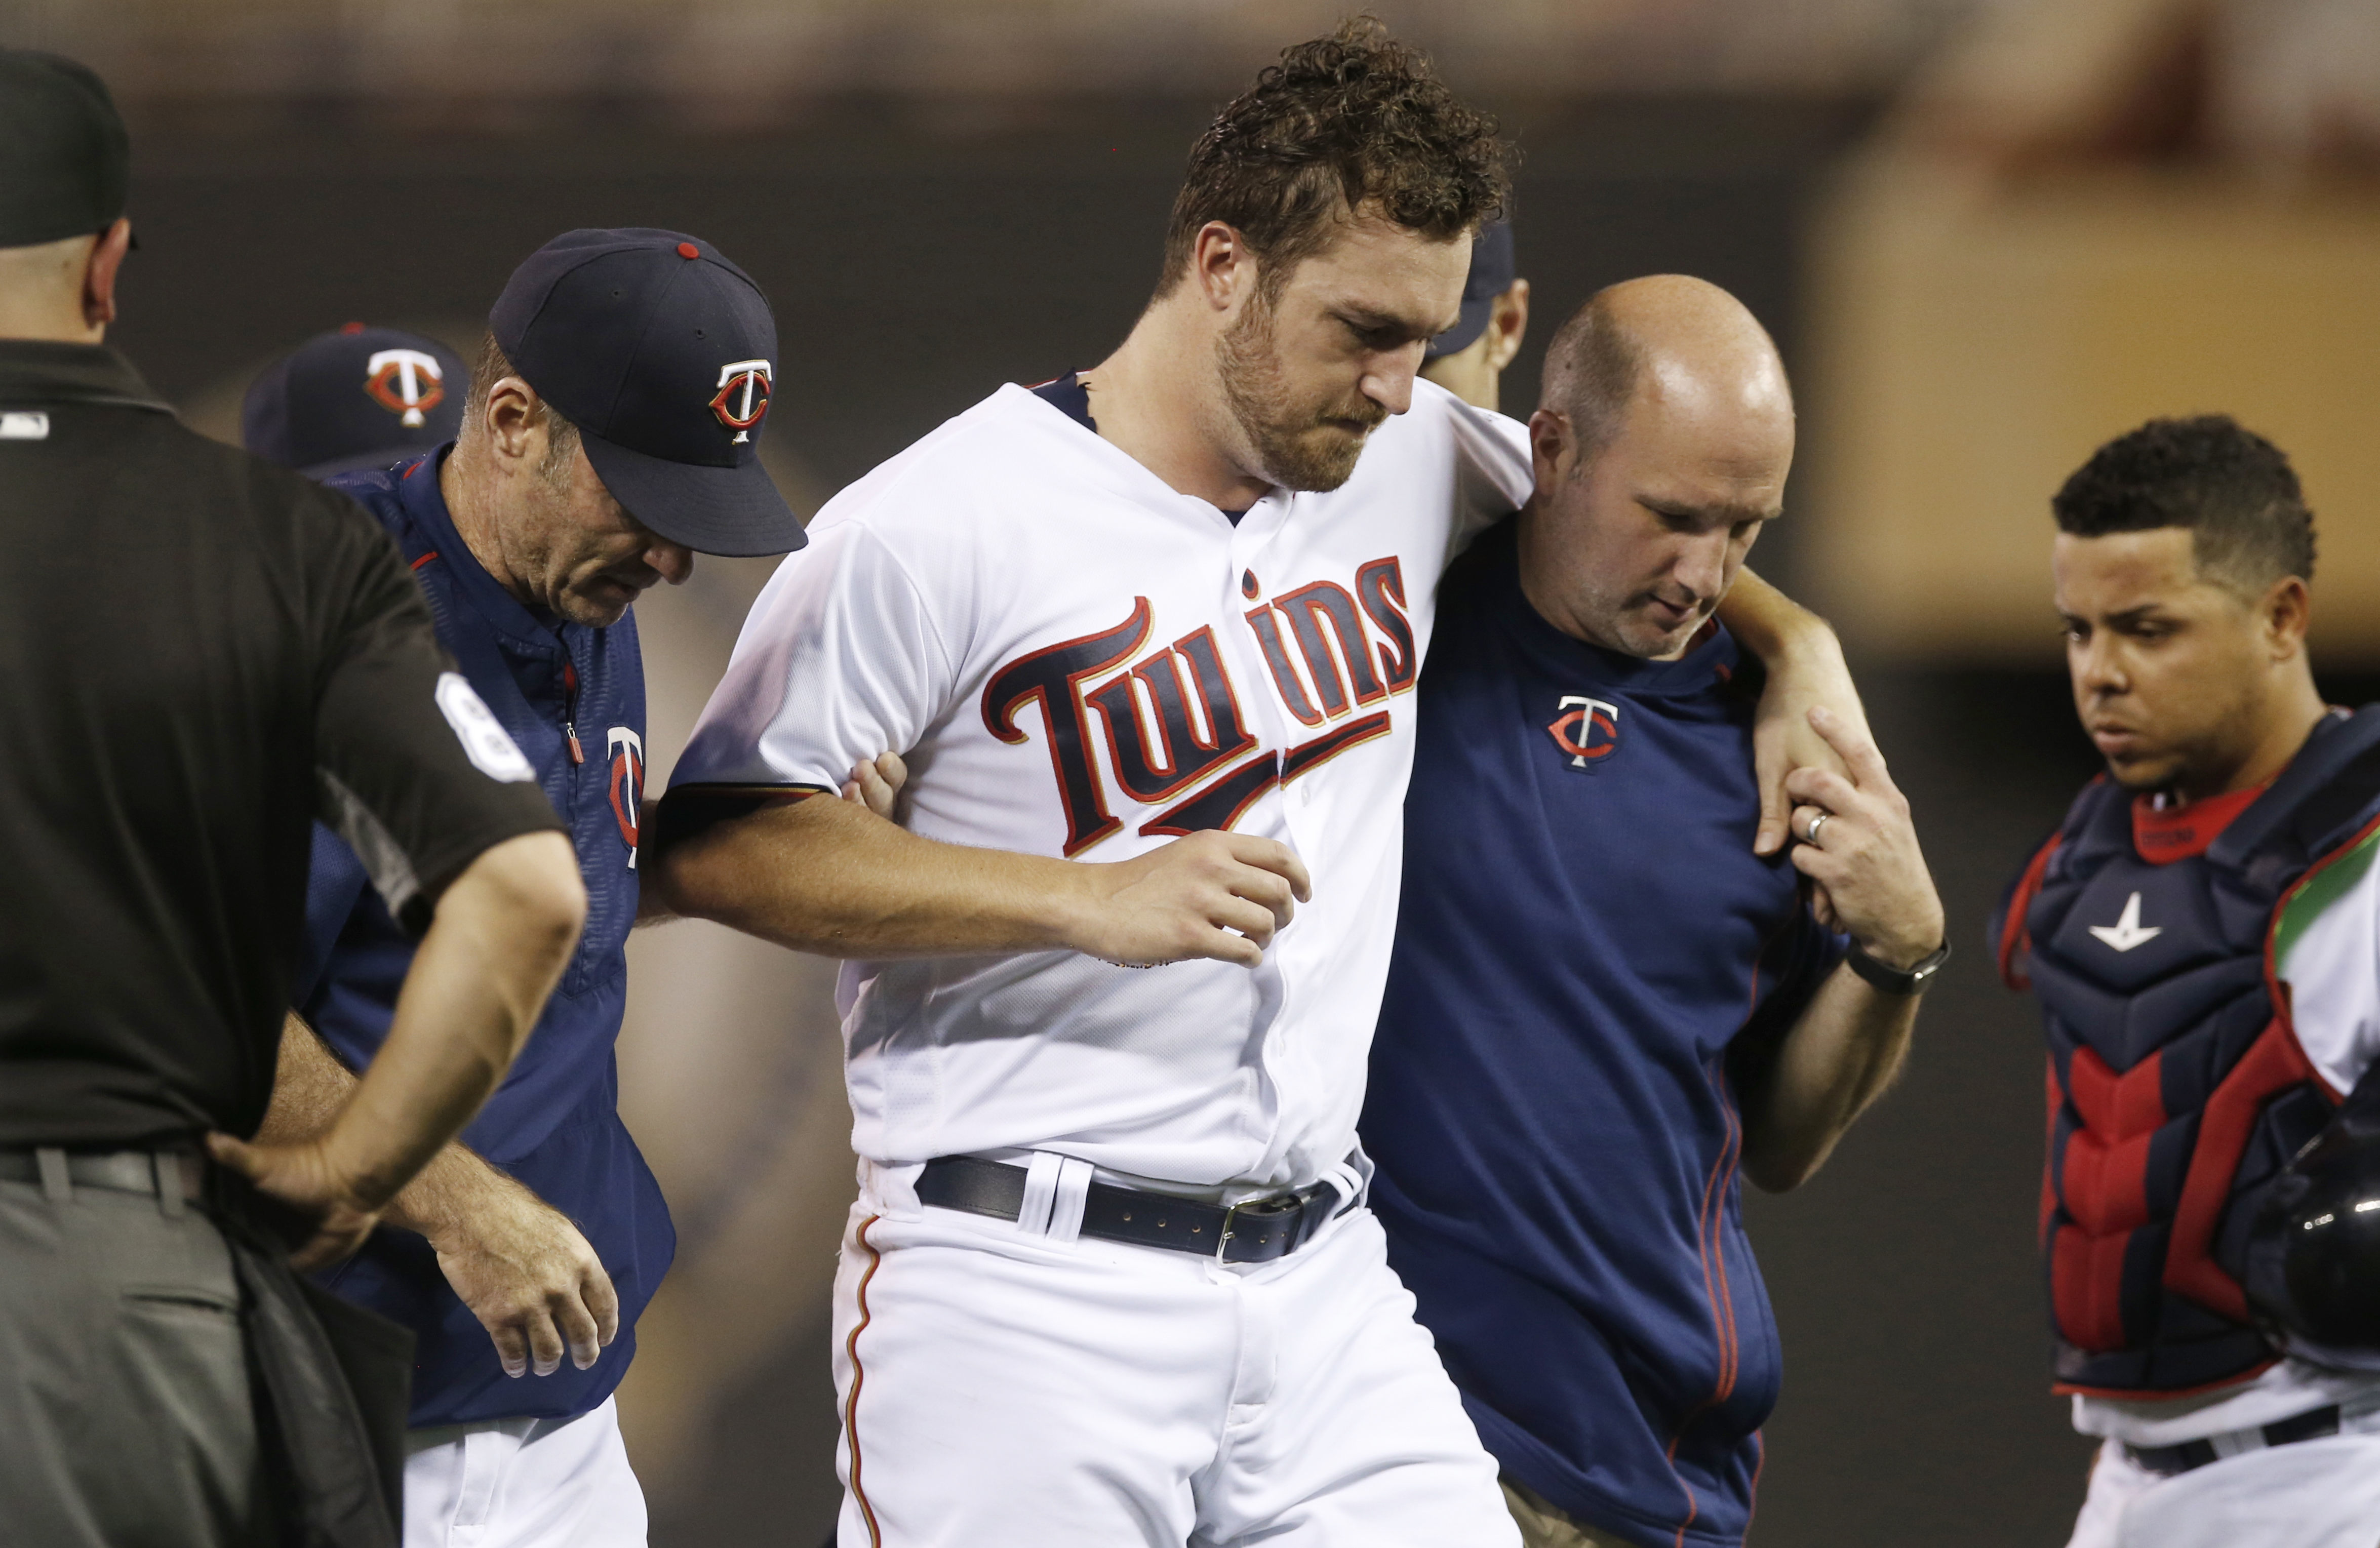 Minnesota Twins pitcher Phil Hughes is helped off the field by trainer Tony Leo, right, and manager Paul Molitor, left, after he was hit in the knee with a line drive by Miami Marlins' J.T. Realmuto during the ninth inning of a baseball game Thursday, Jun